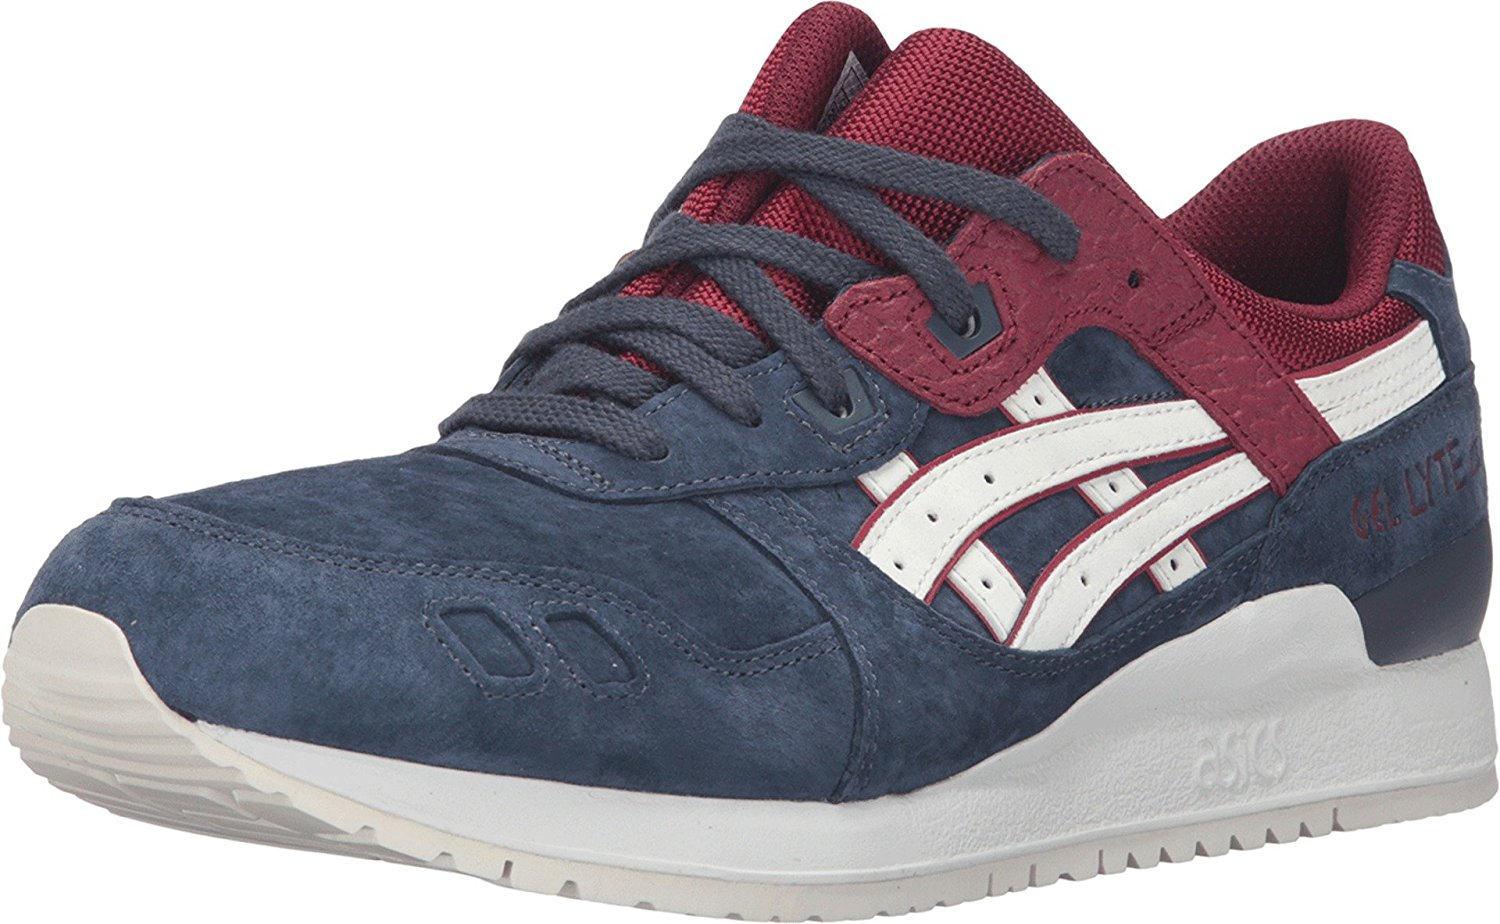 huge discount 94949 c81aa Get Quotations · ASICS Men s Gel-Lyte Iii Fashion Sneaker